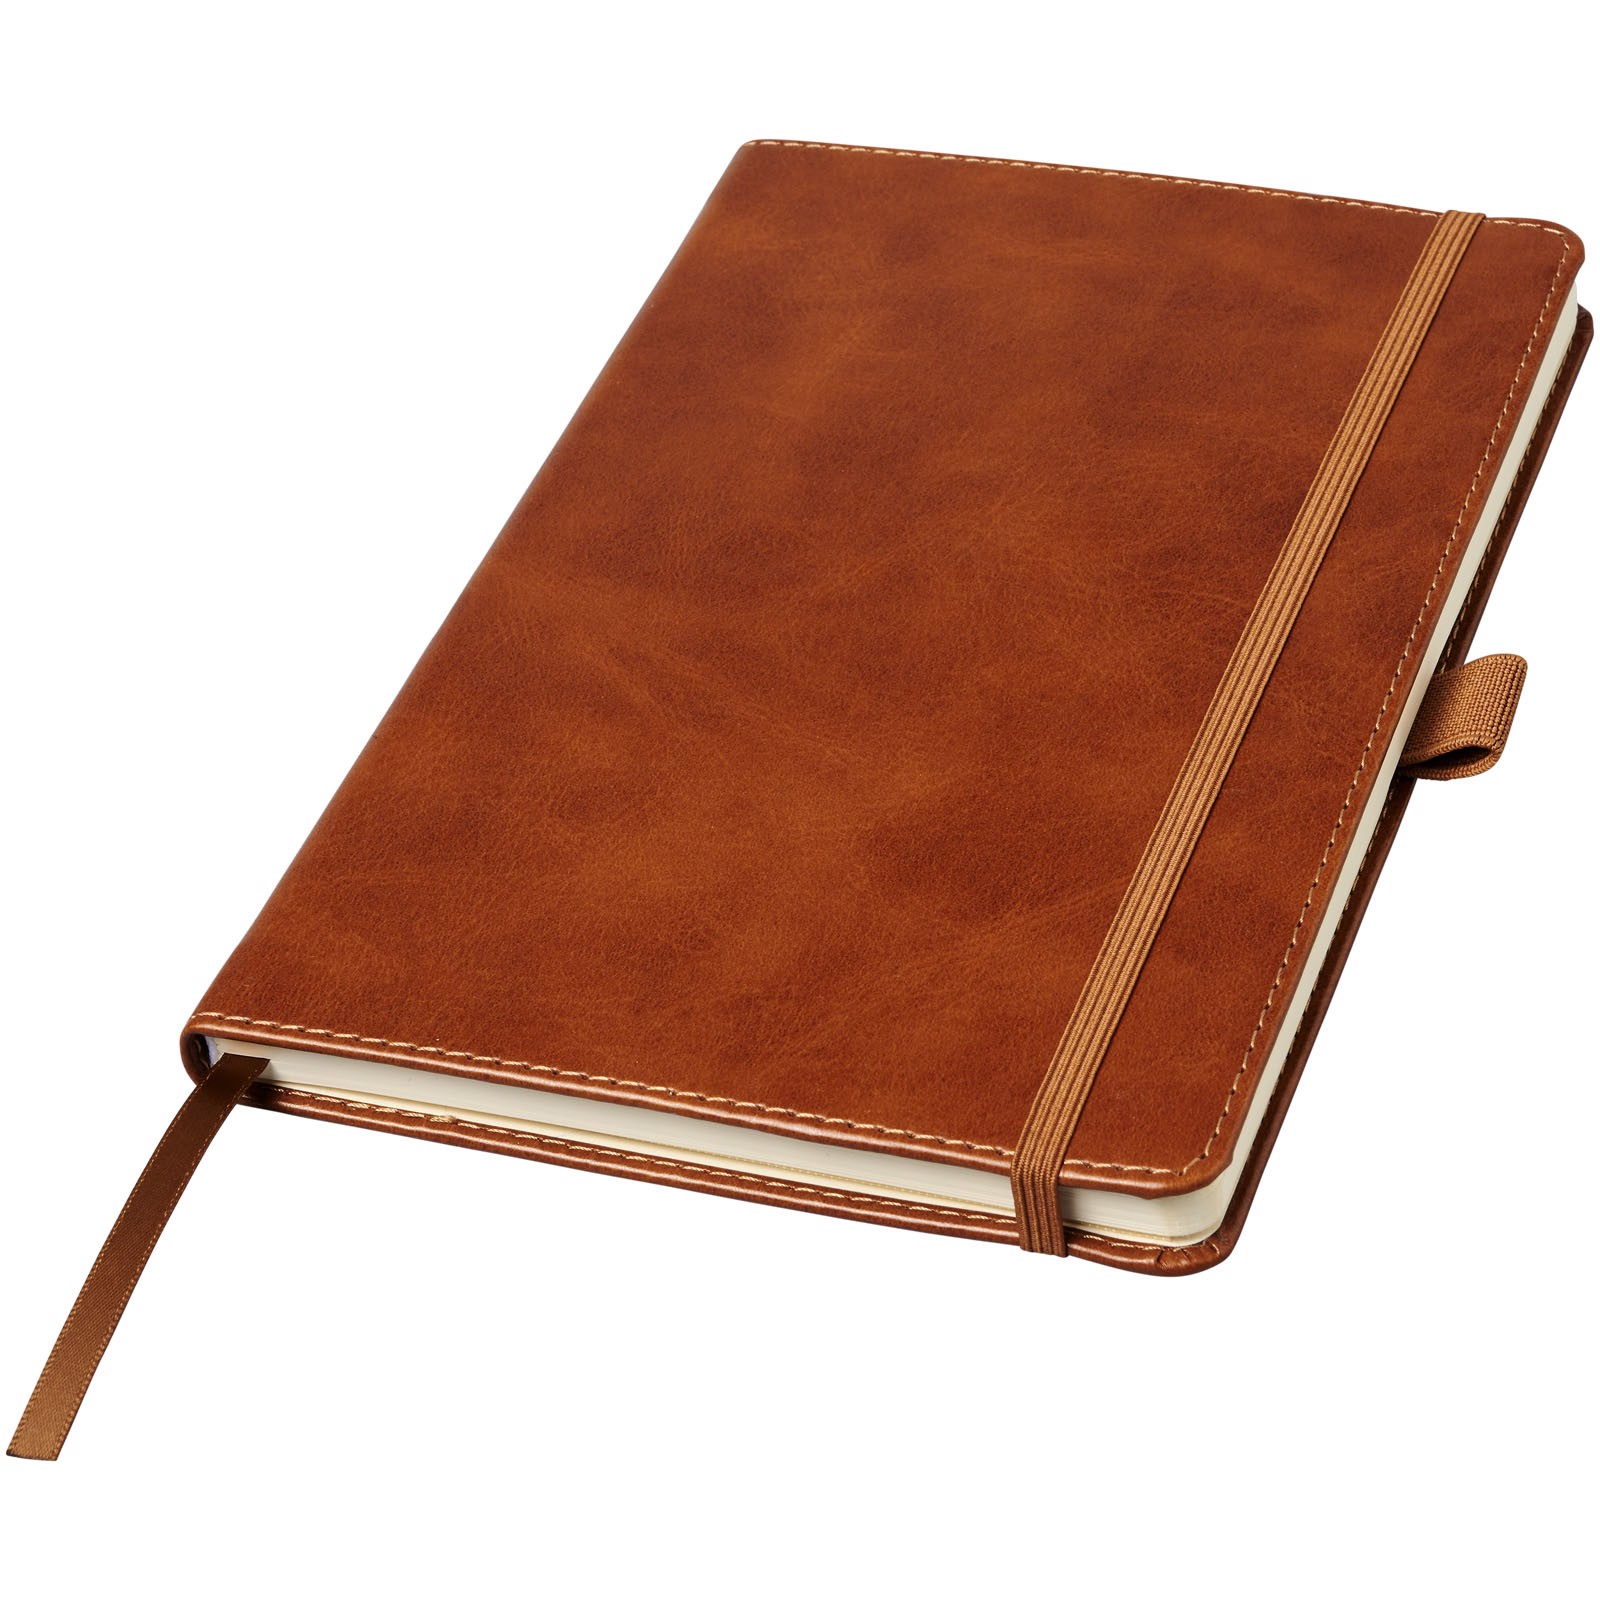 Coda A5 leather look hard cover notebook - Brown